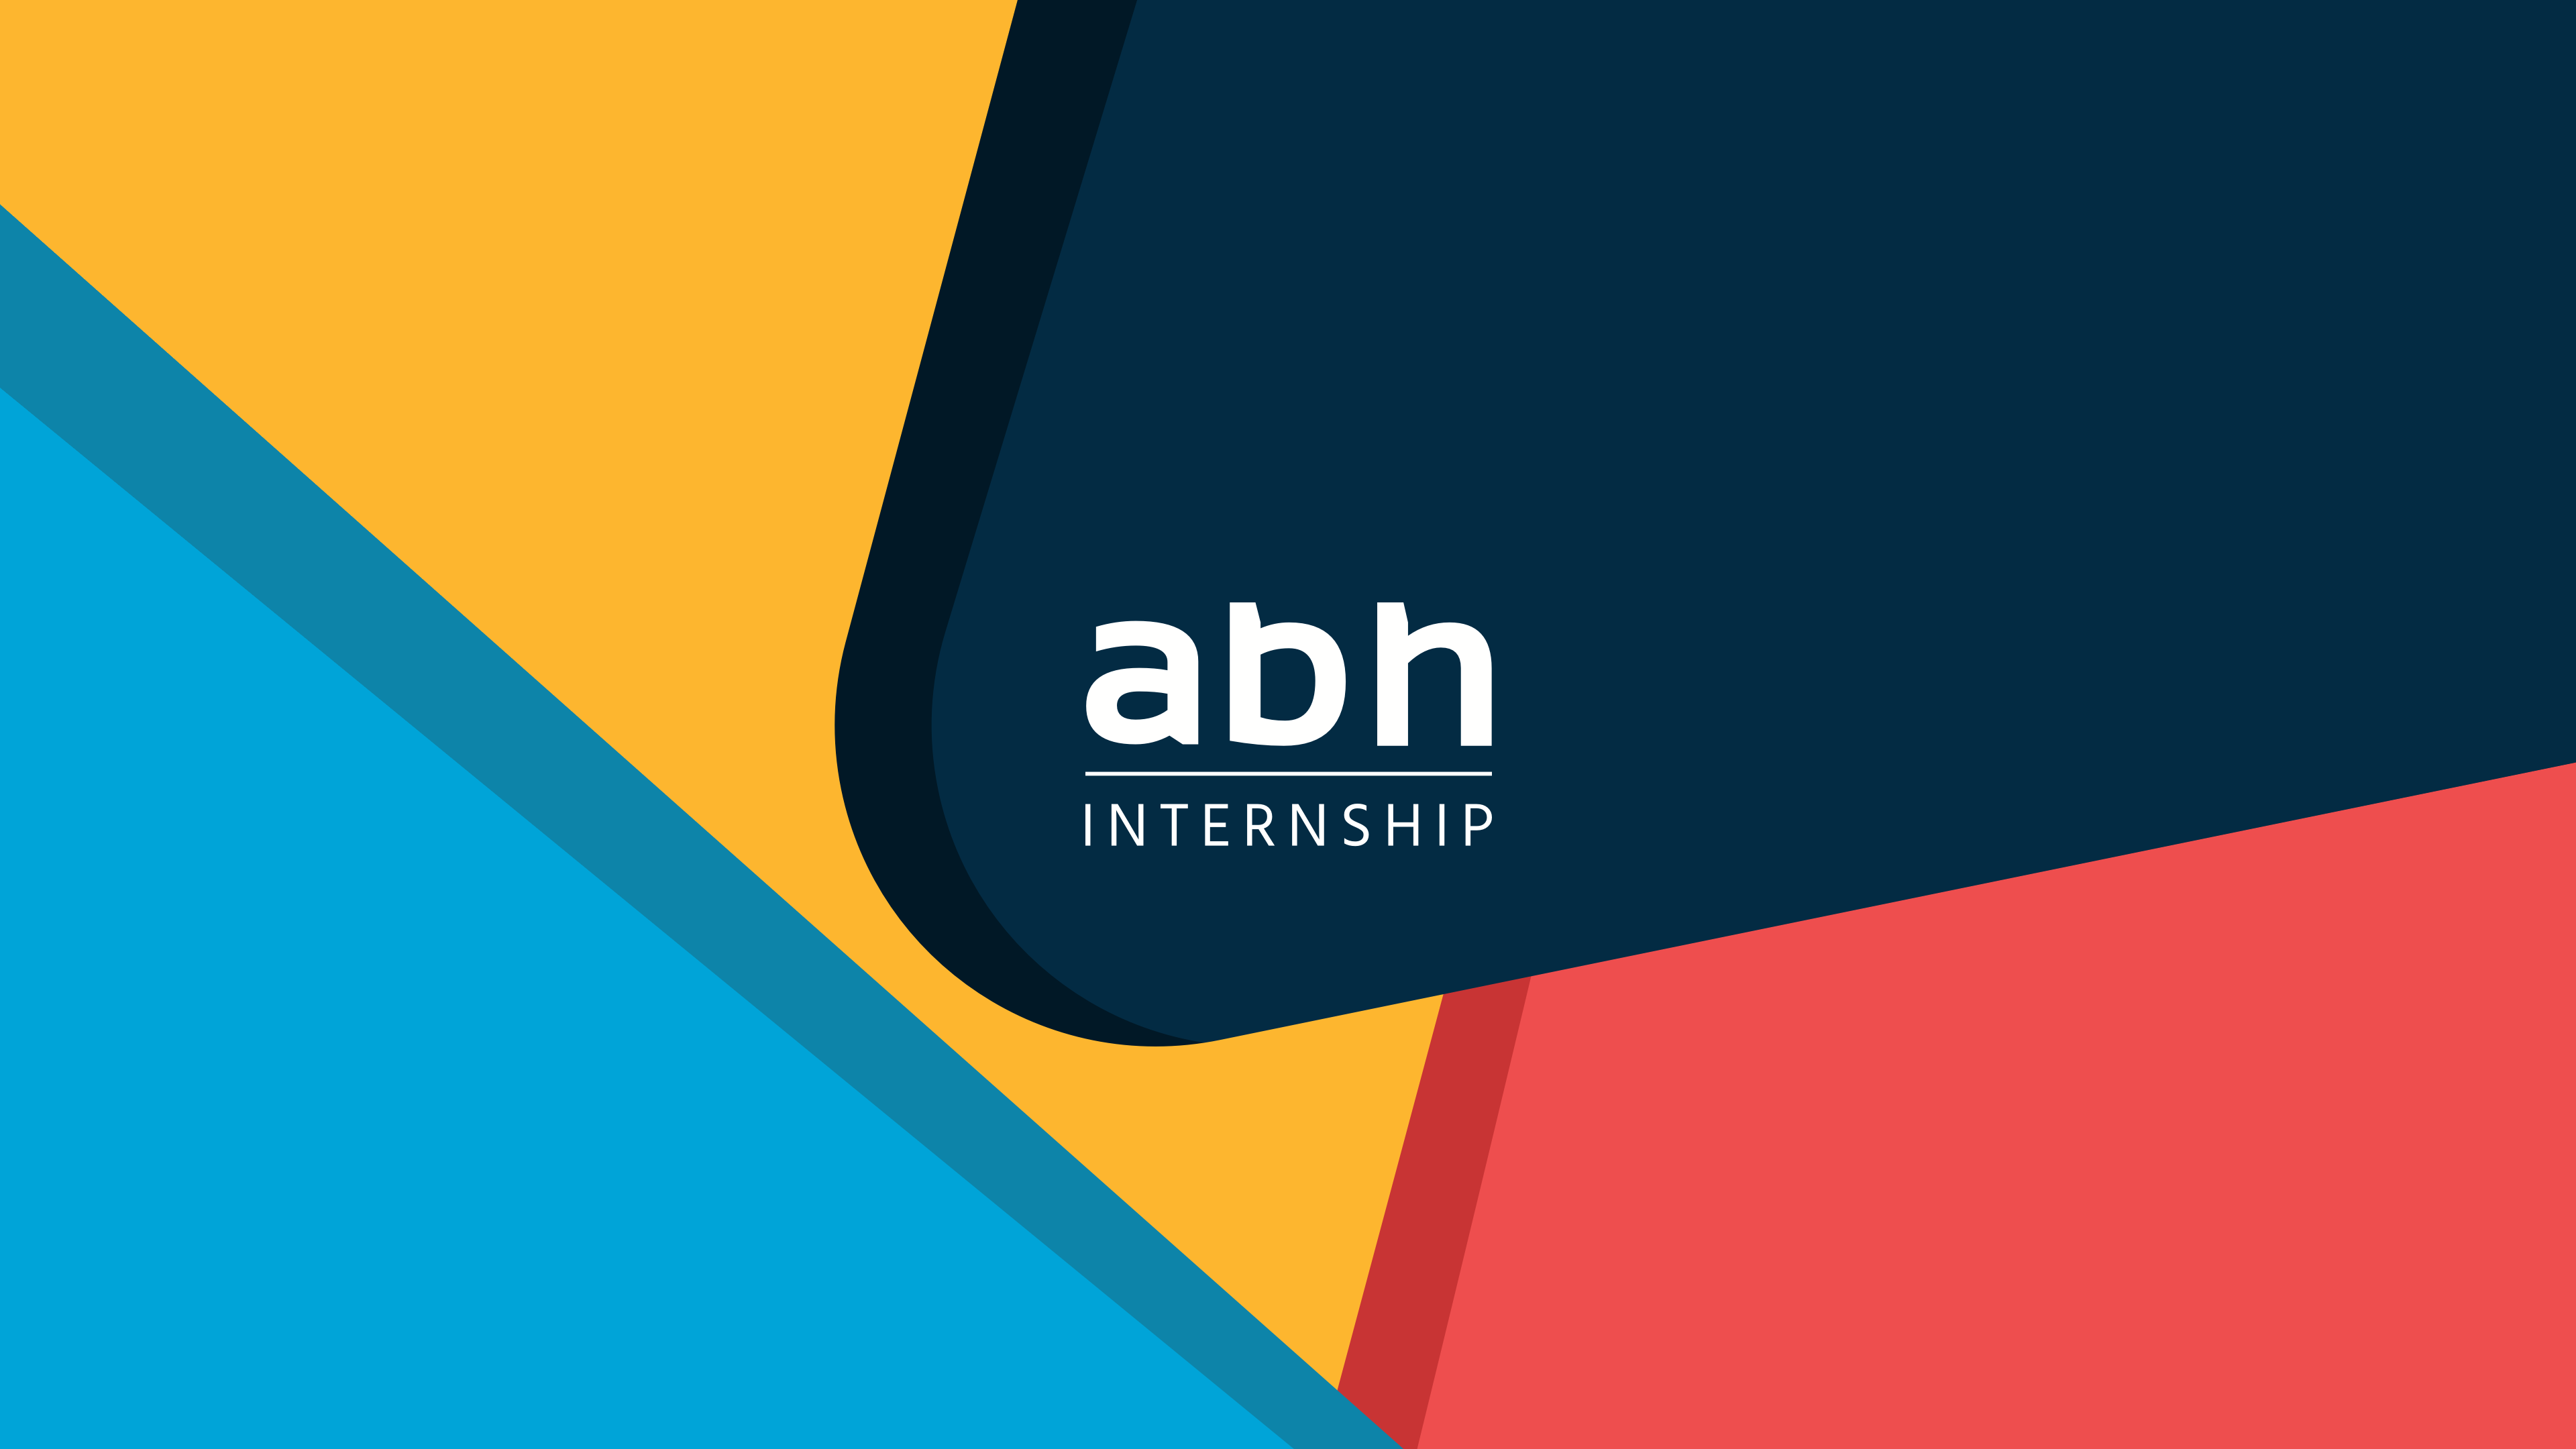 ABH internship projects – All you need to know